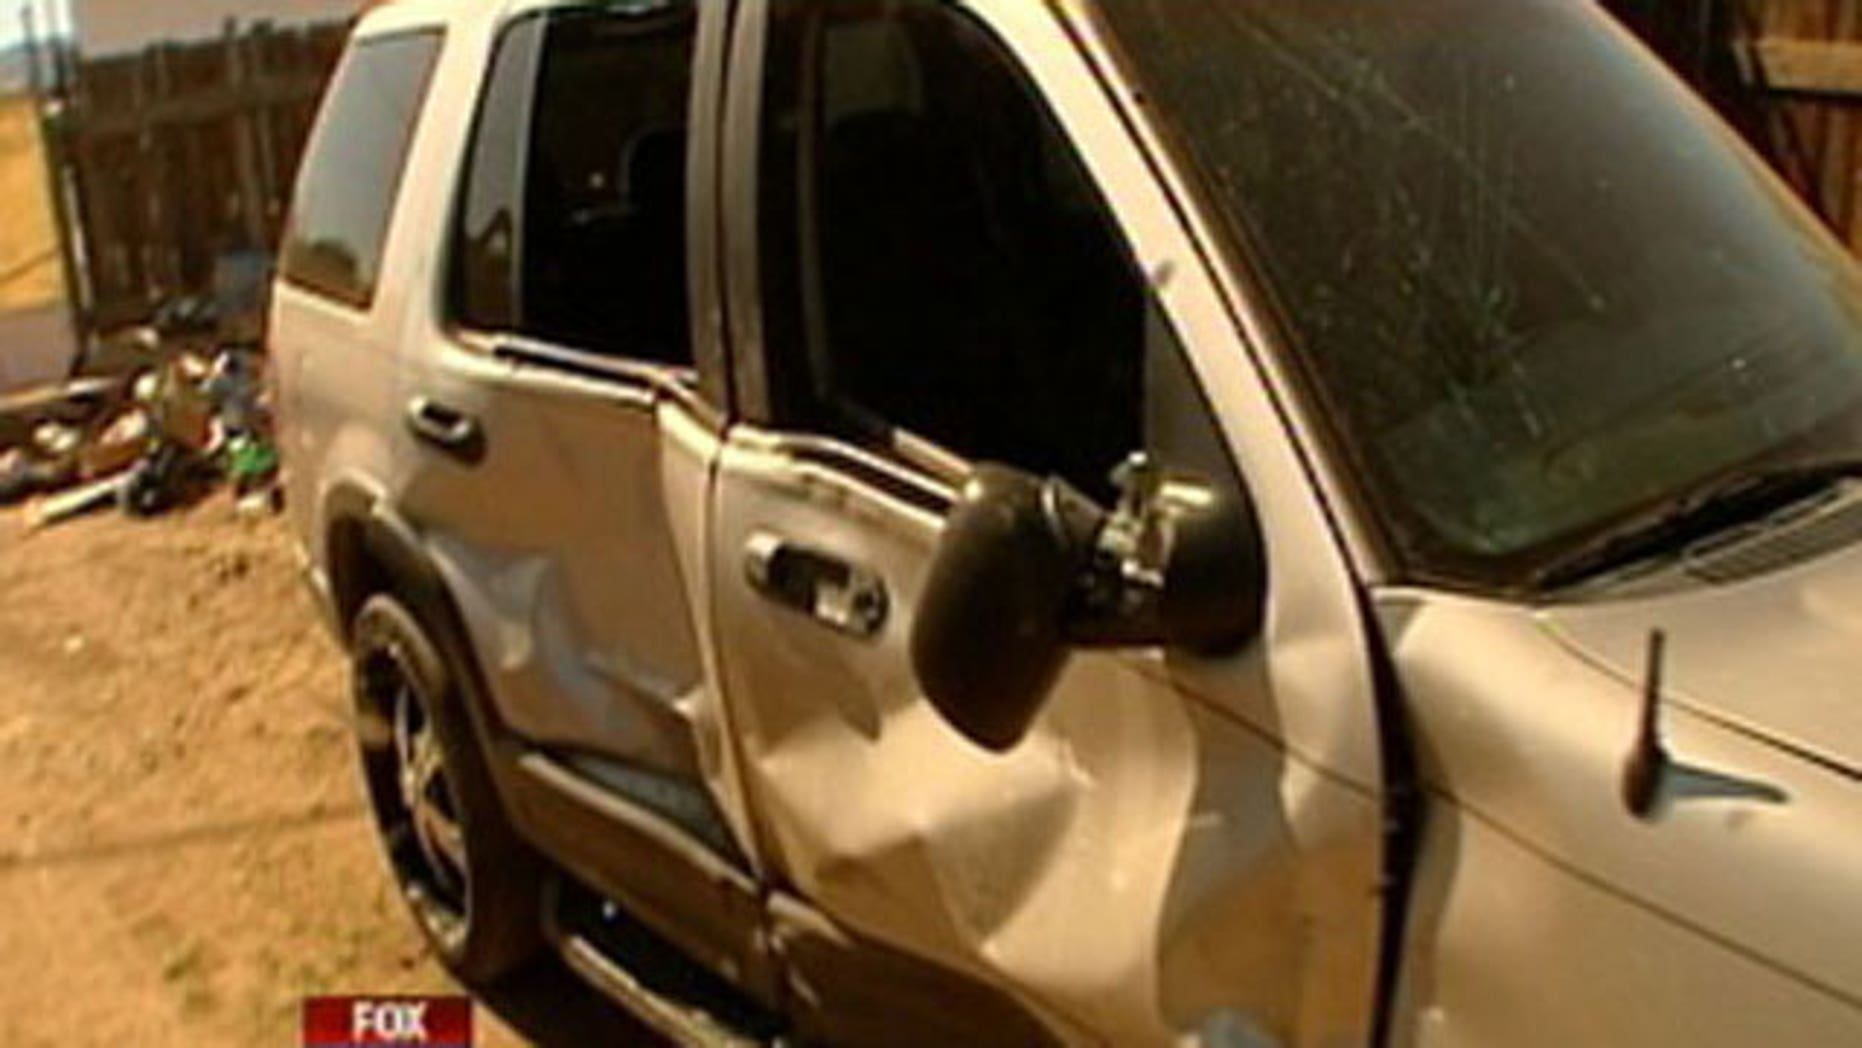 Damage from an Arizona boy's joy ride.